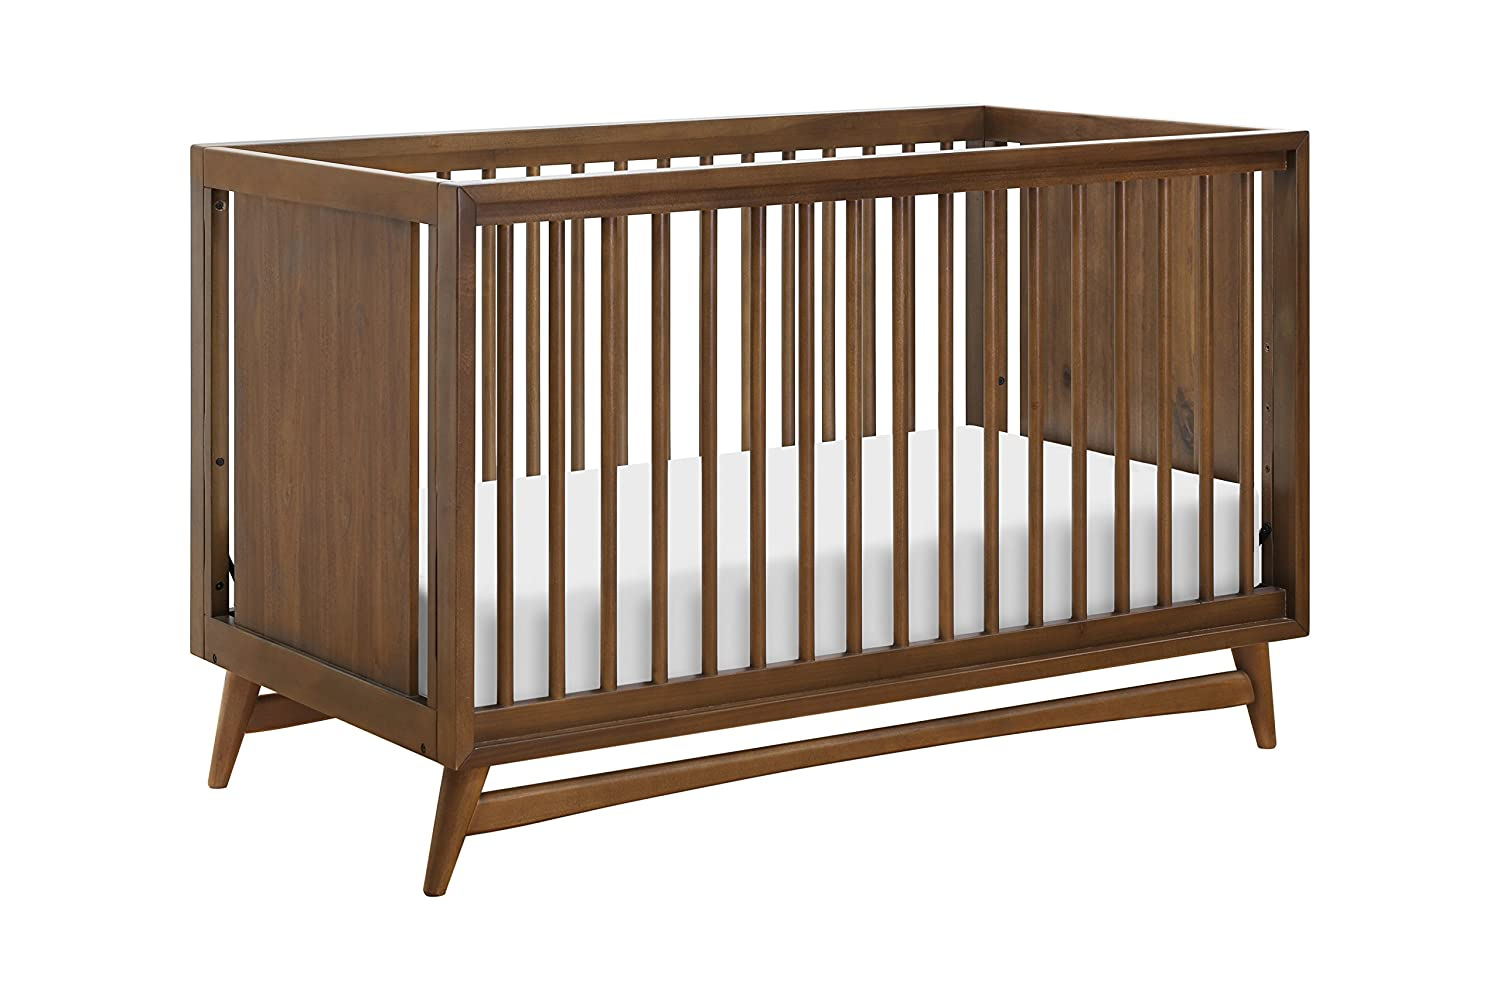 Natural Walnut babyletto Peggy 3-in-1 Convertible Crib